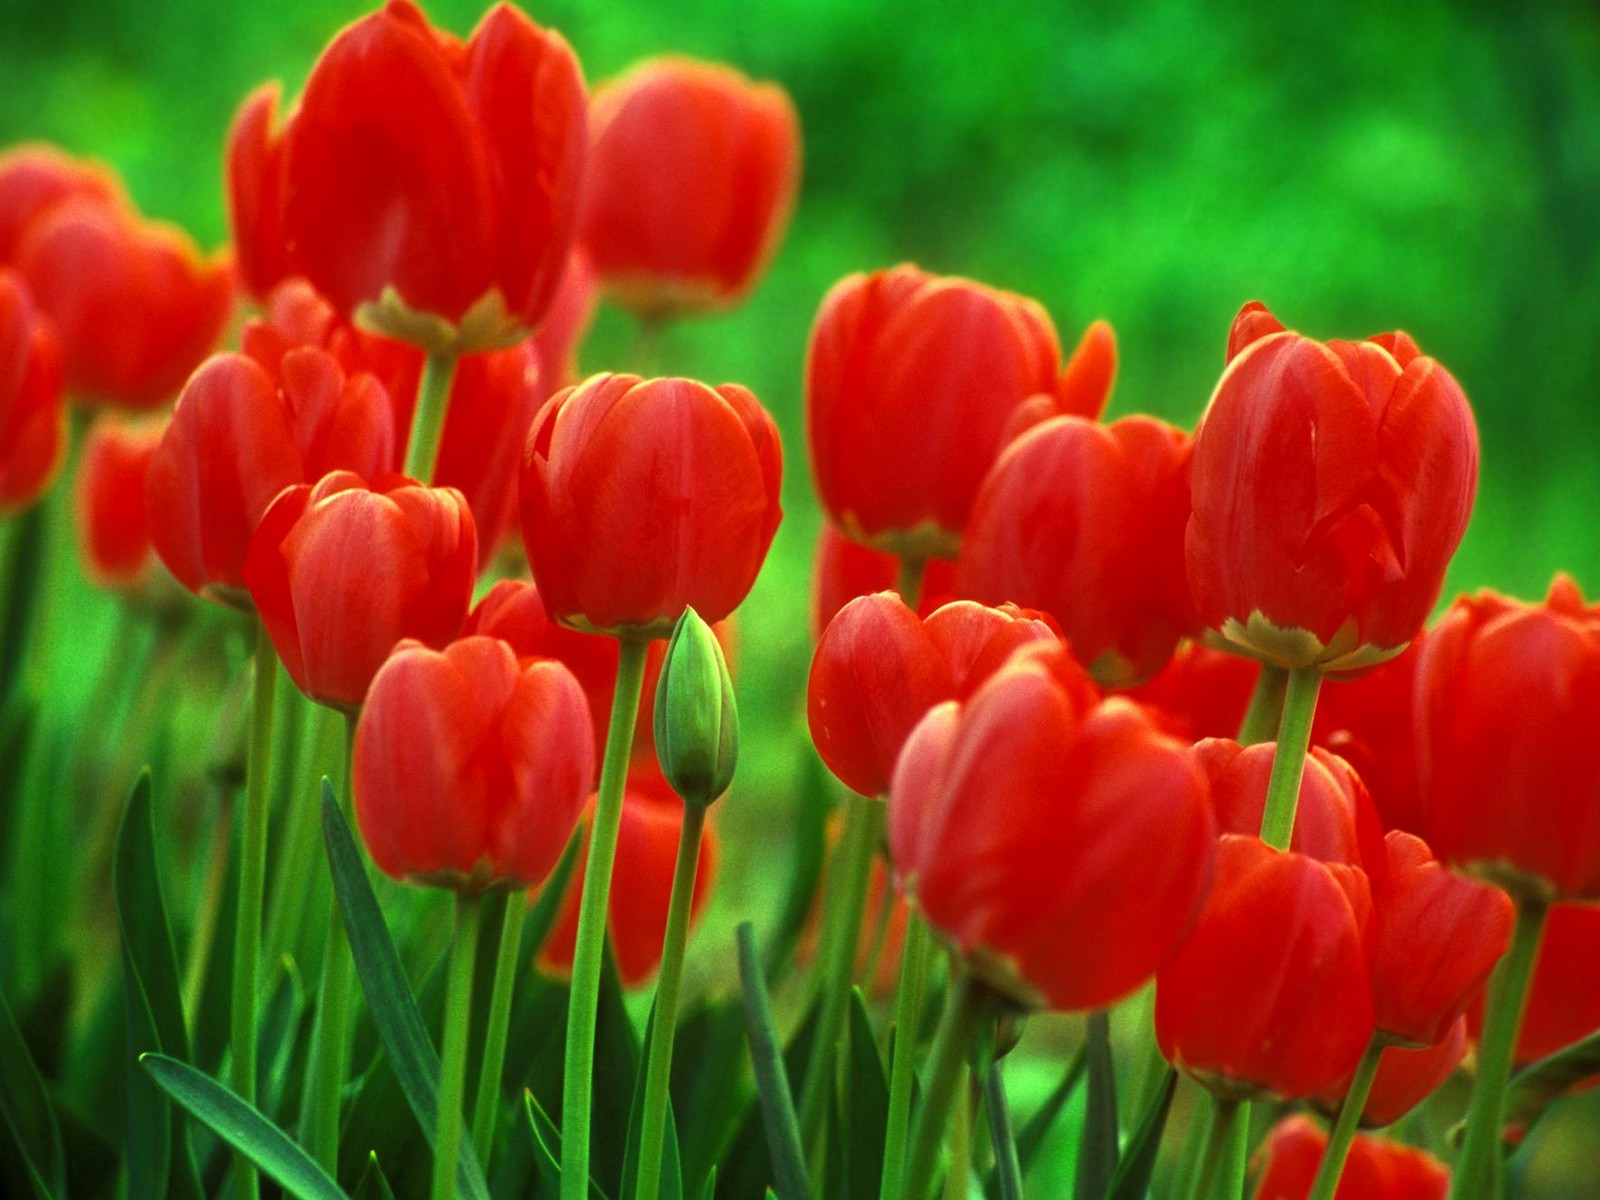 http://1.bp.blogspot.com/-tn0lo0-4t90/UBjXDmxoI0I/AAAAAAAAABs/95pZS-0a19k/s1600/red_tulips_wallpaper.jpg